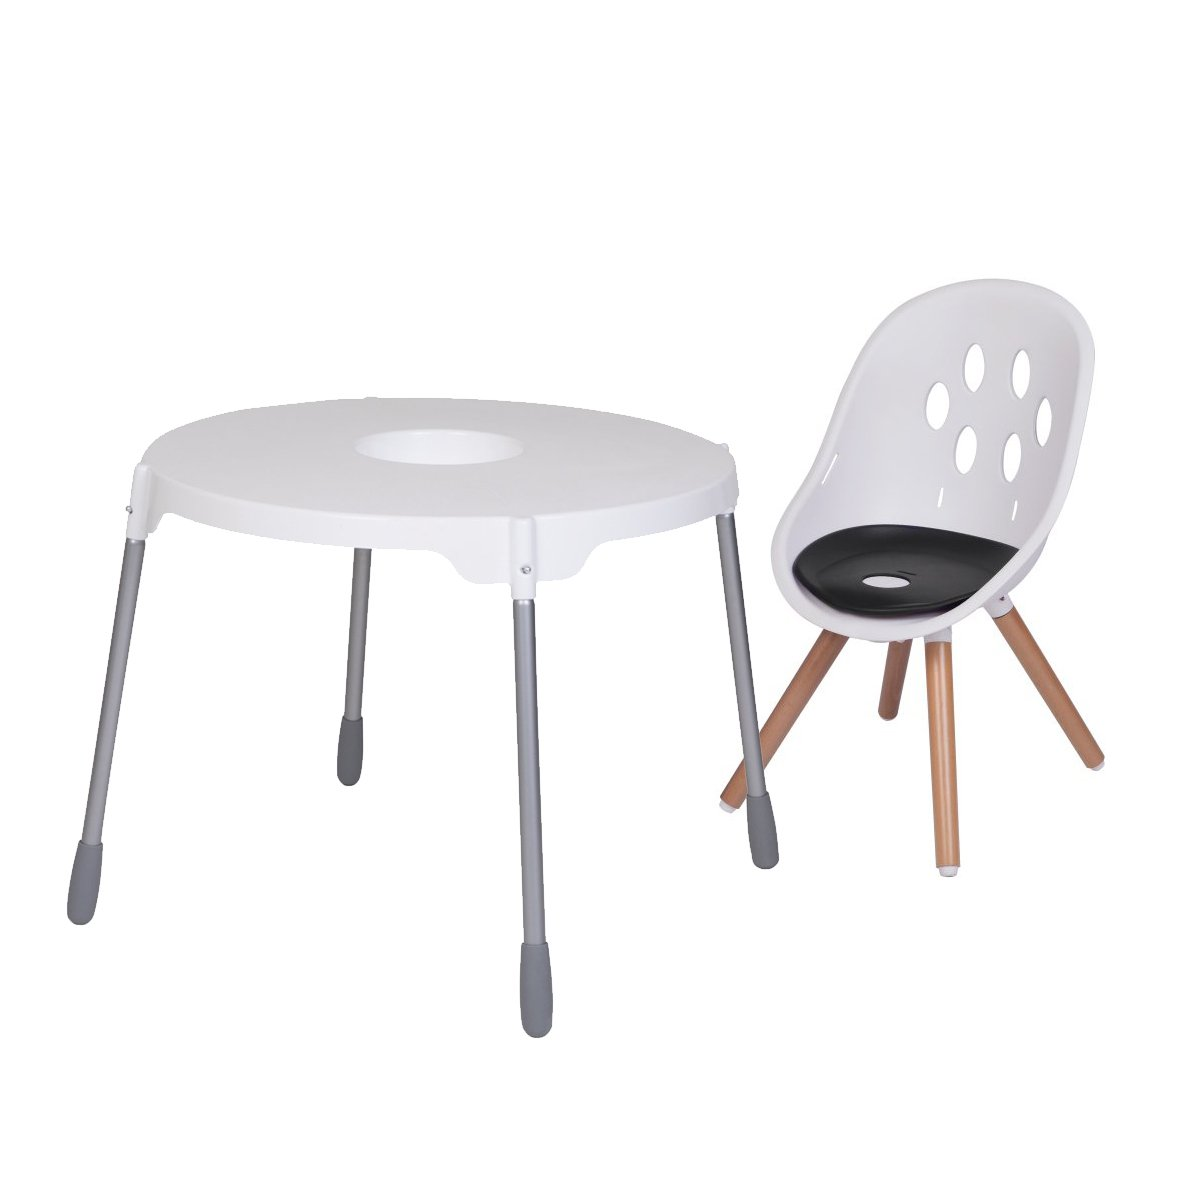 https://cdn.accentuate.io/4560618815522/19437753335986/phil_and_teds_poppy_wood_leg_high_chair_to_my_chair_dual_modes_1_combo-v1630984547535.jpg?1200x1200